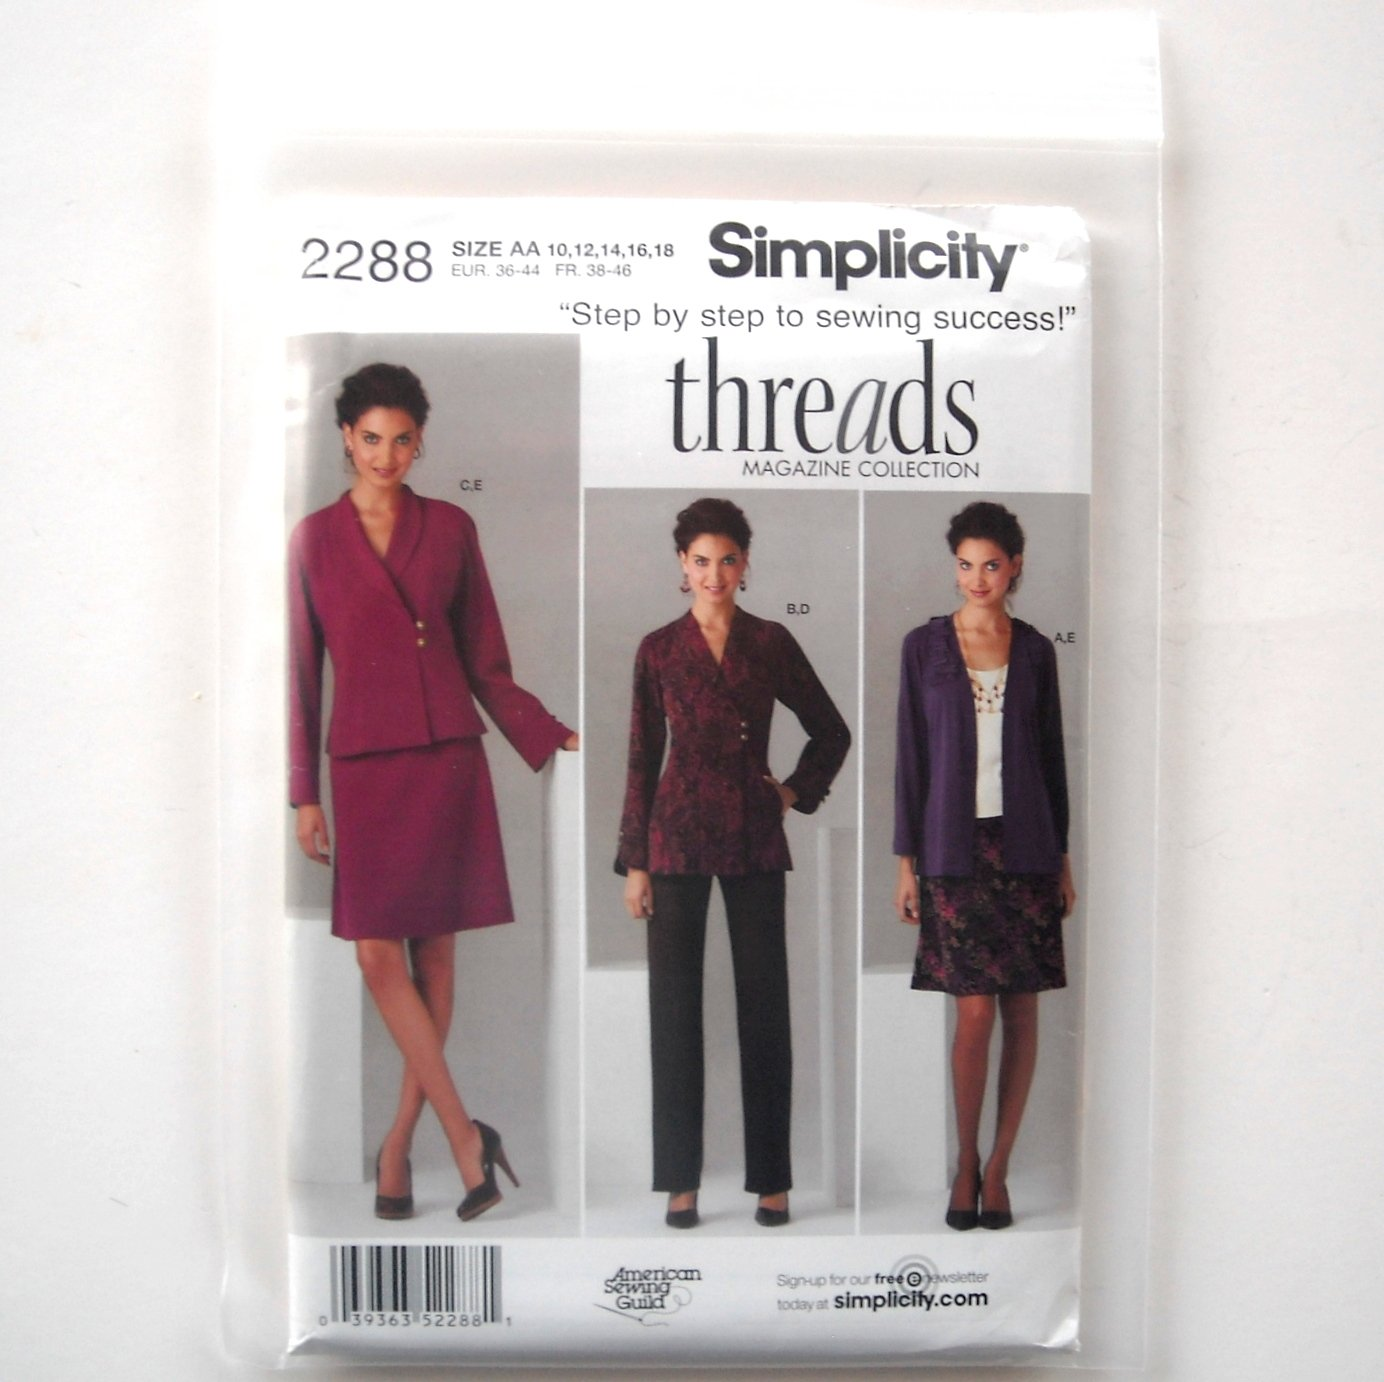 Simplicity Pattern 2288 Size 10 - 18 Threads American Sewing Guild Misses Plus Jacket Pants Skirt